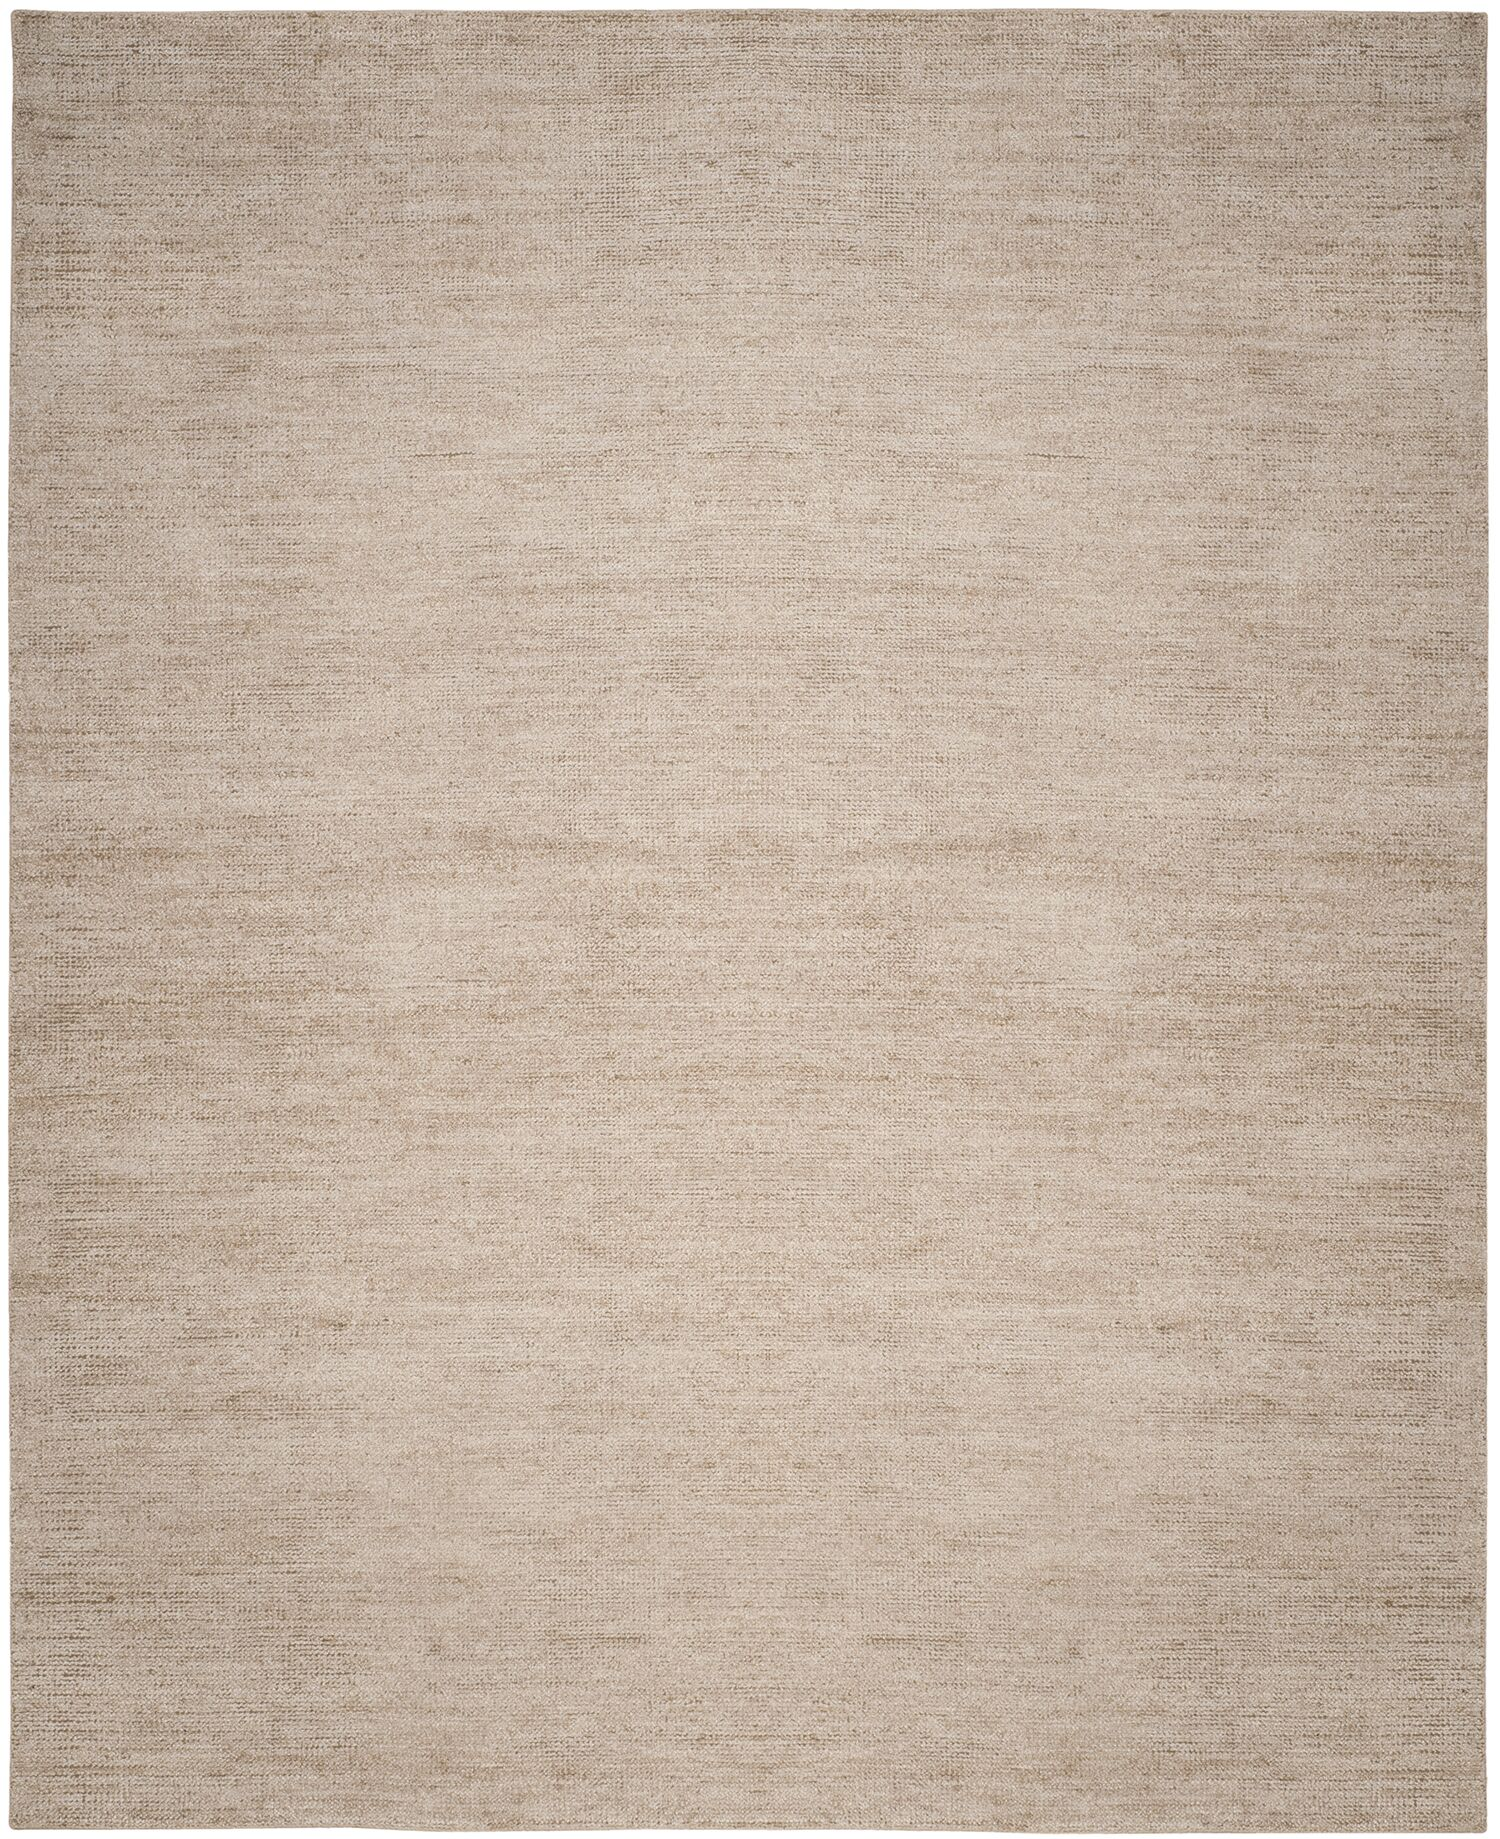 McArthur Hand-Knotted Beige Area Rug Rug Size: Rectangle 8' x 10'